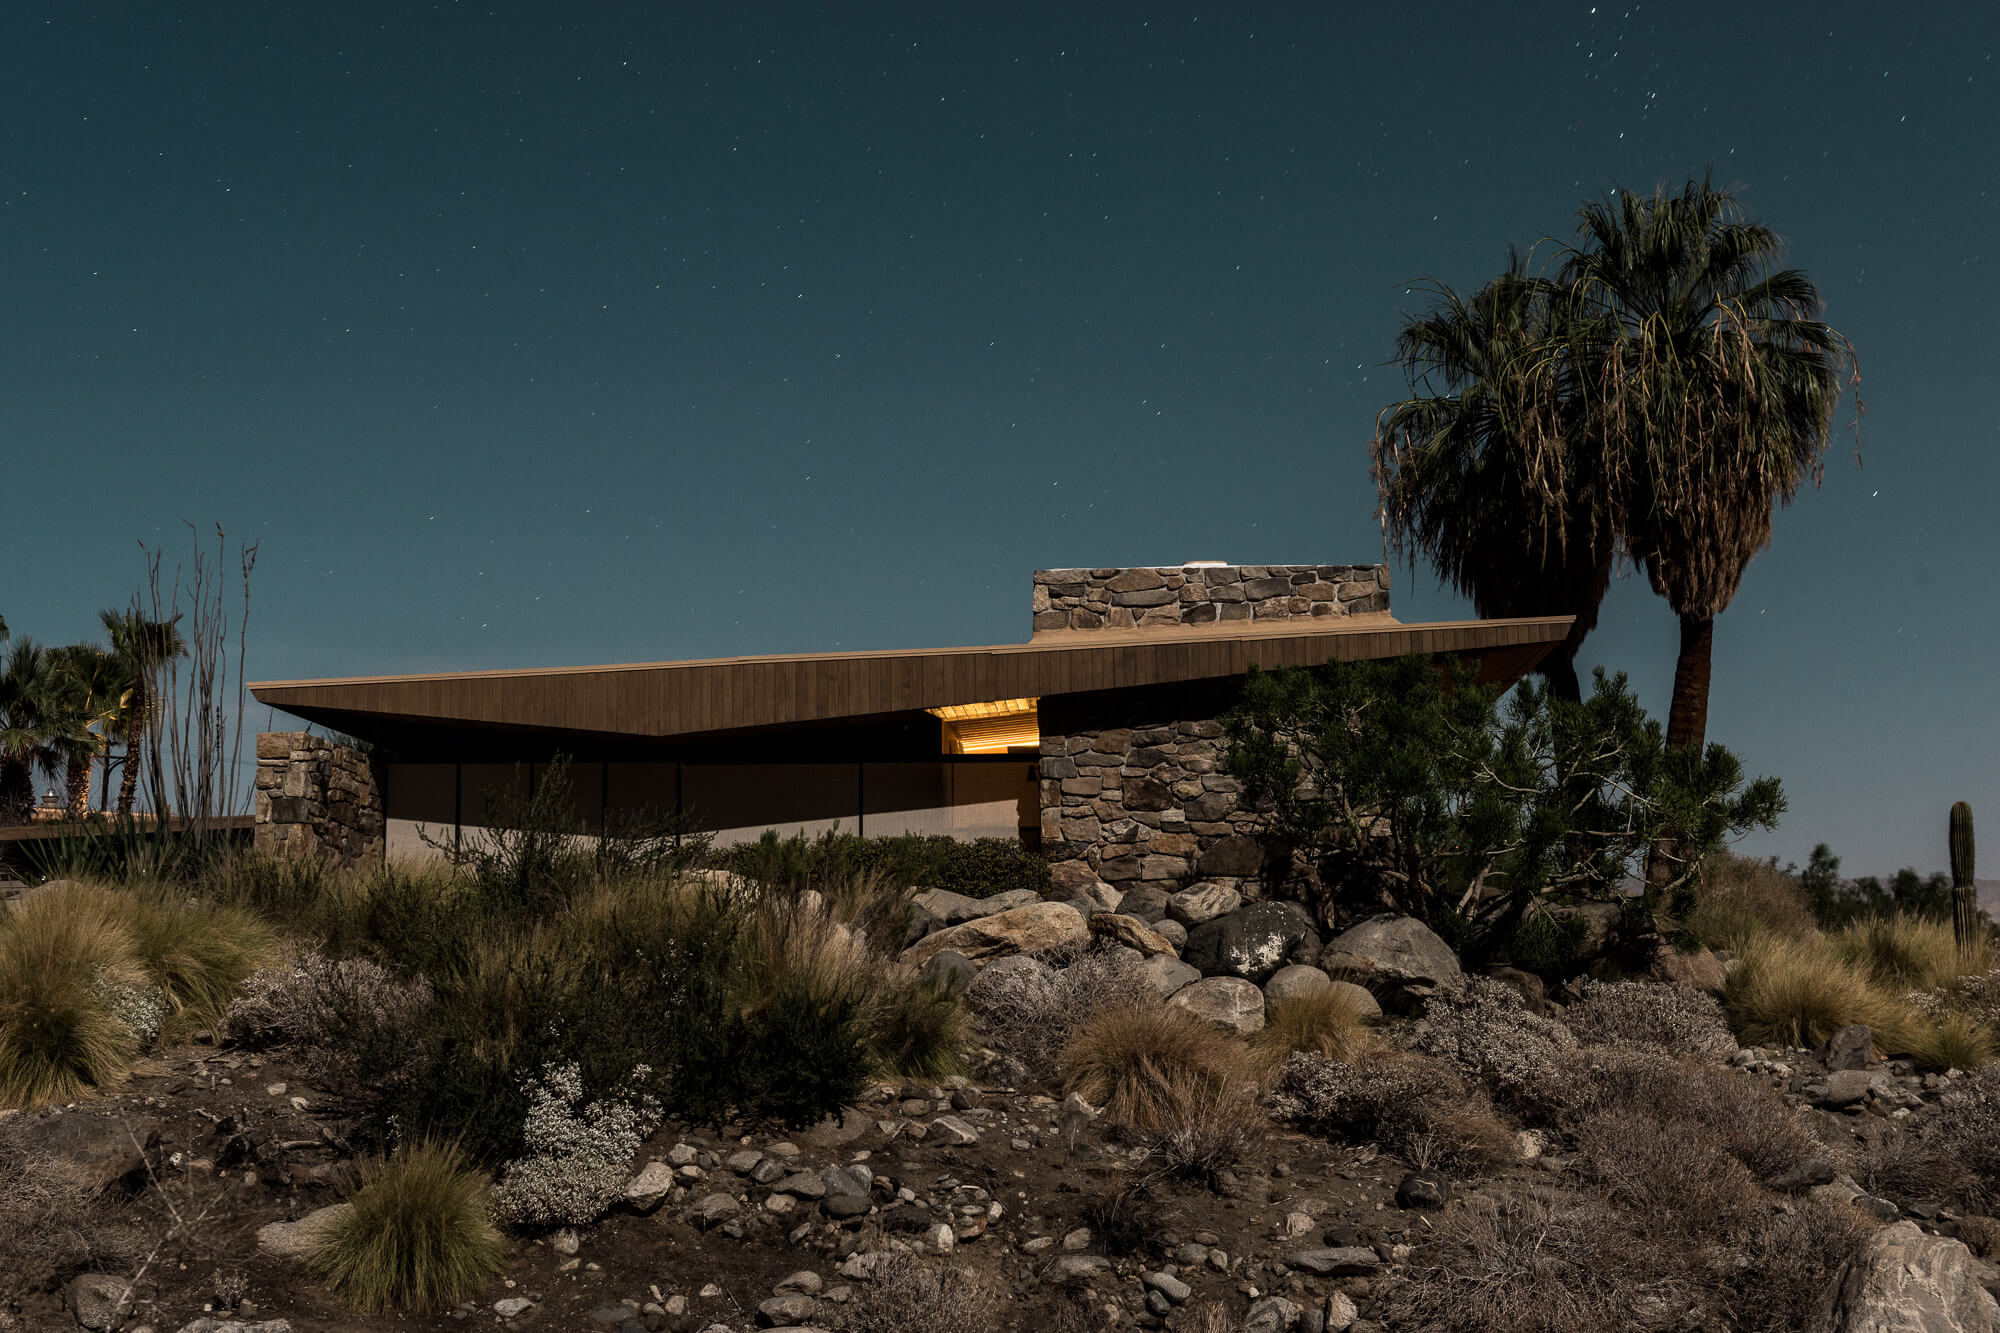 Fine-Art-Tom-Blachford-1030-West-Cielo-Drive-TomBlachford_MidnightModernSeries1.jpg